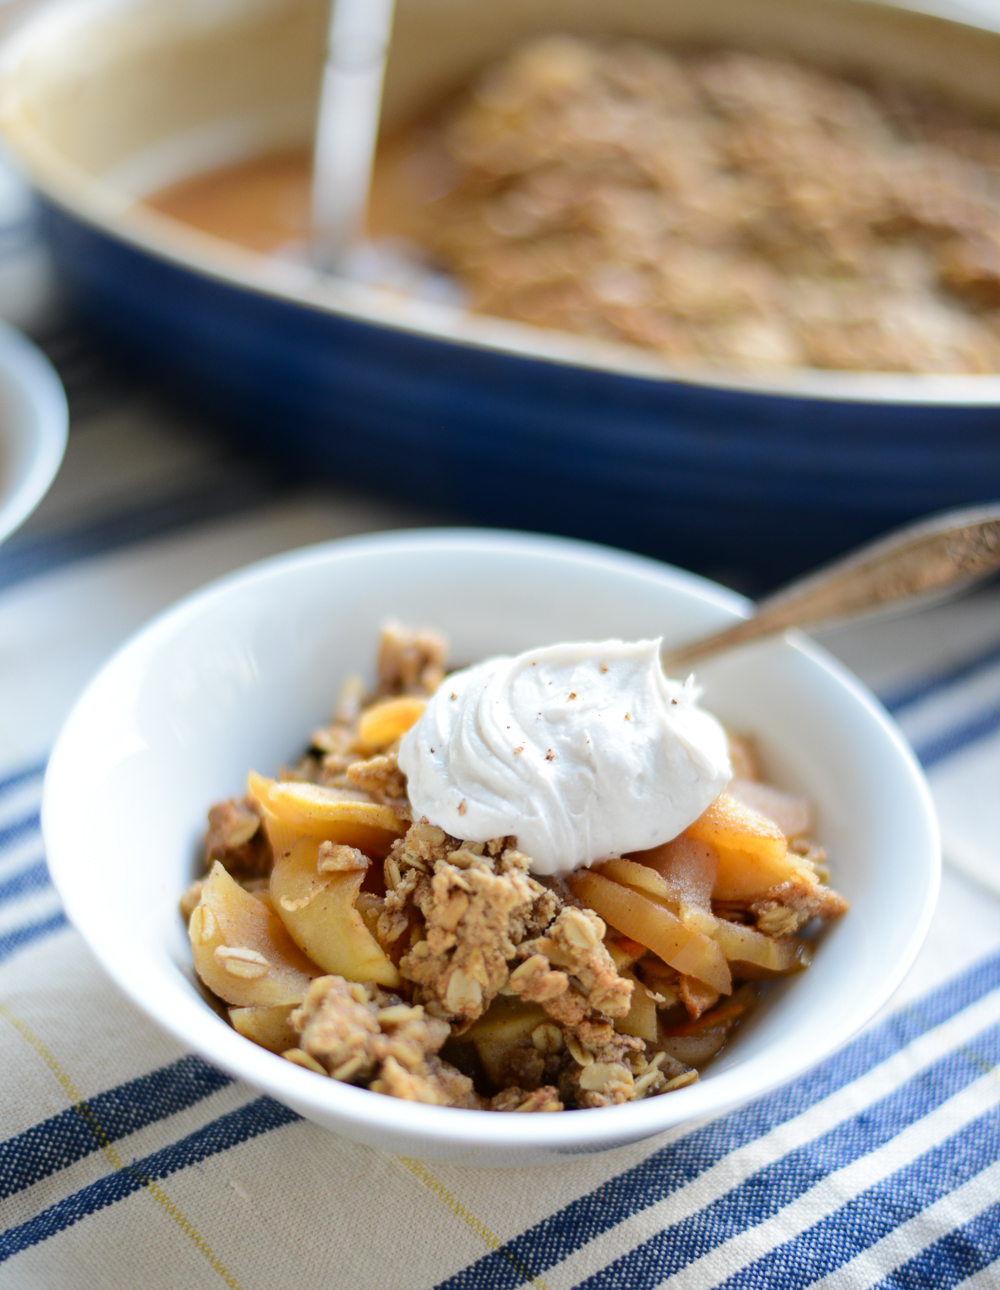 The perfect dessert to serve a crowd, Healthier Old-Fashioned Apple Crisp is brimming with lightly sweet cinnamon-spiked apples and topped with a crunchy, satisfying oat topping. It's also naturally gluten- and dairy-free, so you can enjoy this comforting dessert more often! #healthy #realfood #recipe #fall #dessert #applecrisp #glutenfree #dairyfree #nutfree #refinedsugarfree #vegan #vegetarian